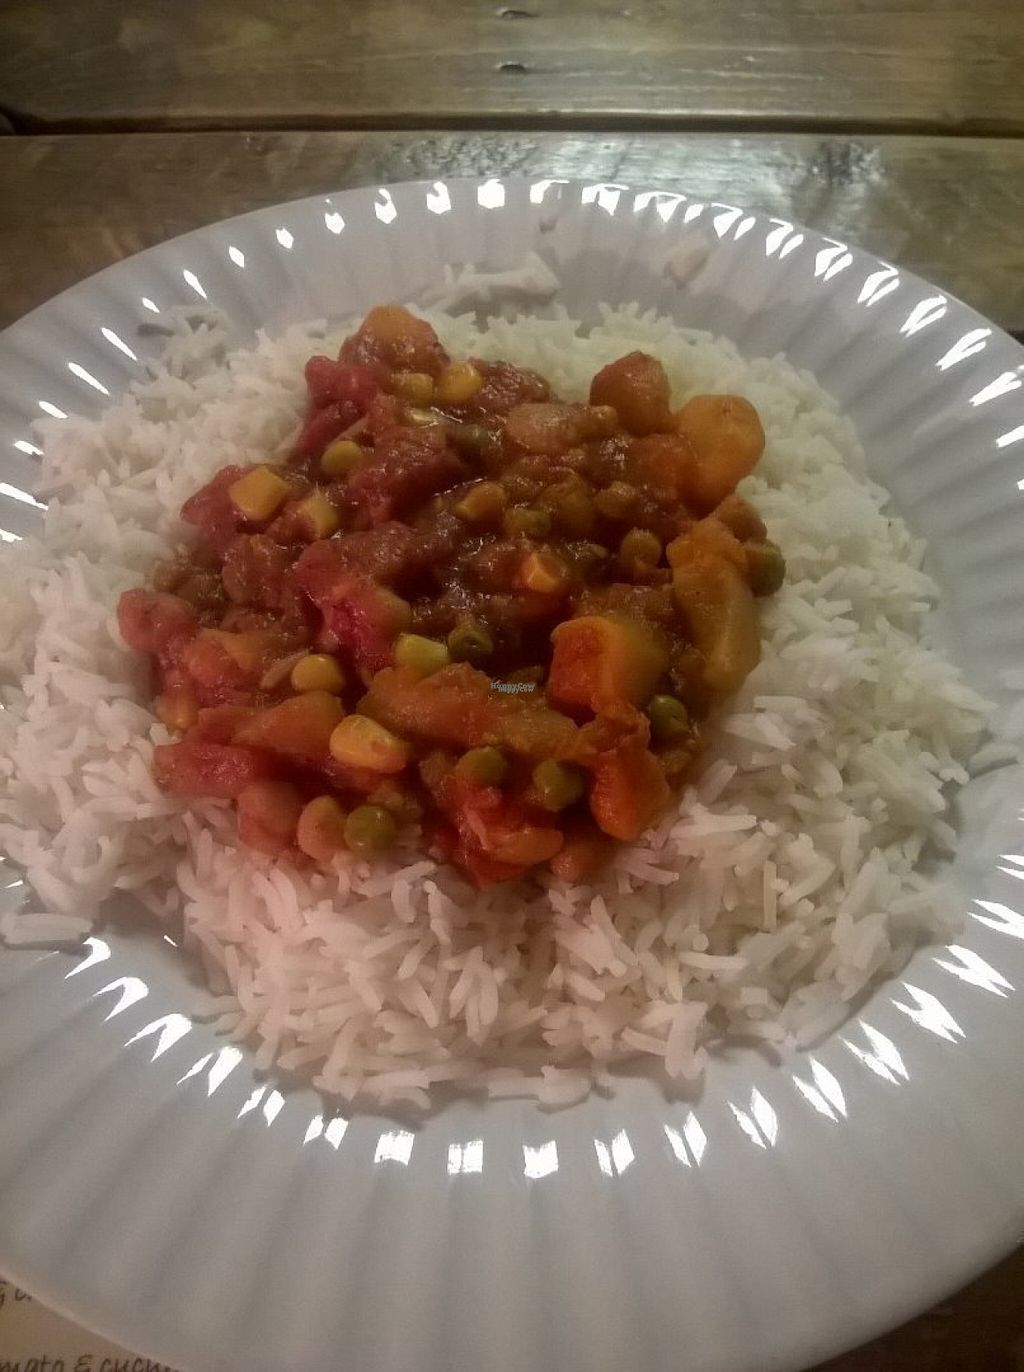 """Photo of Super Natural Kitchen  by <a href=""""/members/profile/deadpledge"""">deadpledge</a> <br/>Red Thai curry <br/> August 5, 2016  - <a href='/contact/abuse/image/74502/165858'>Report</a>"""